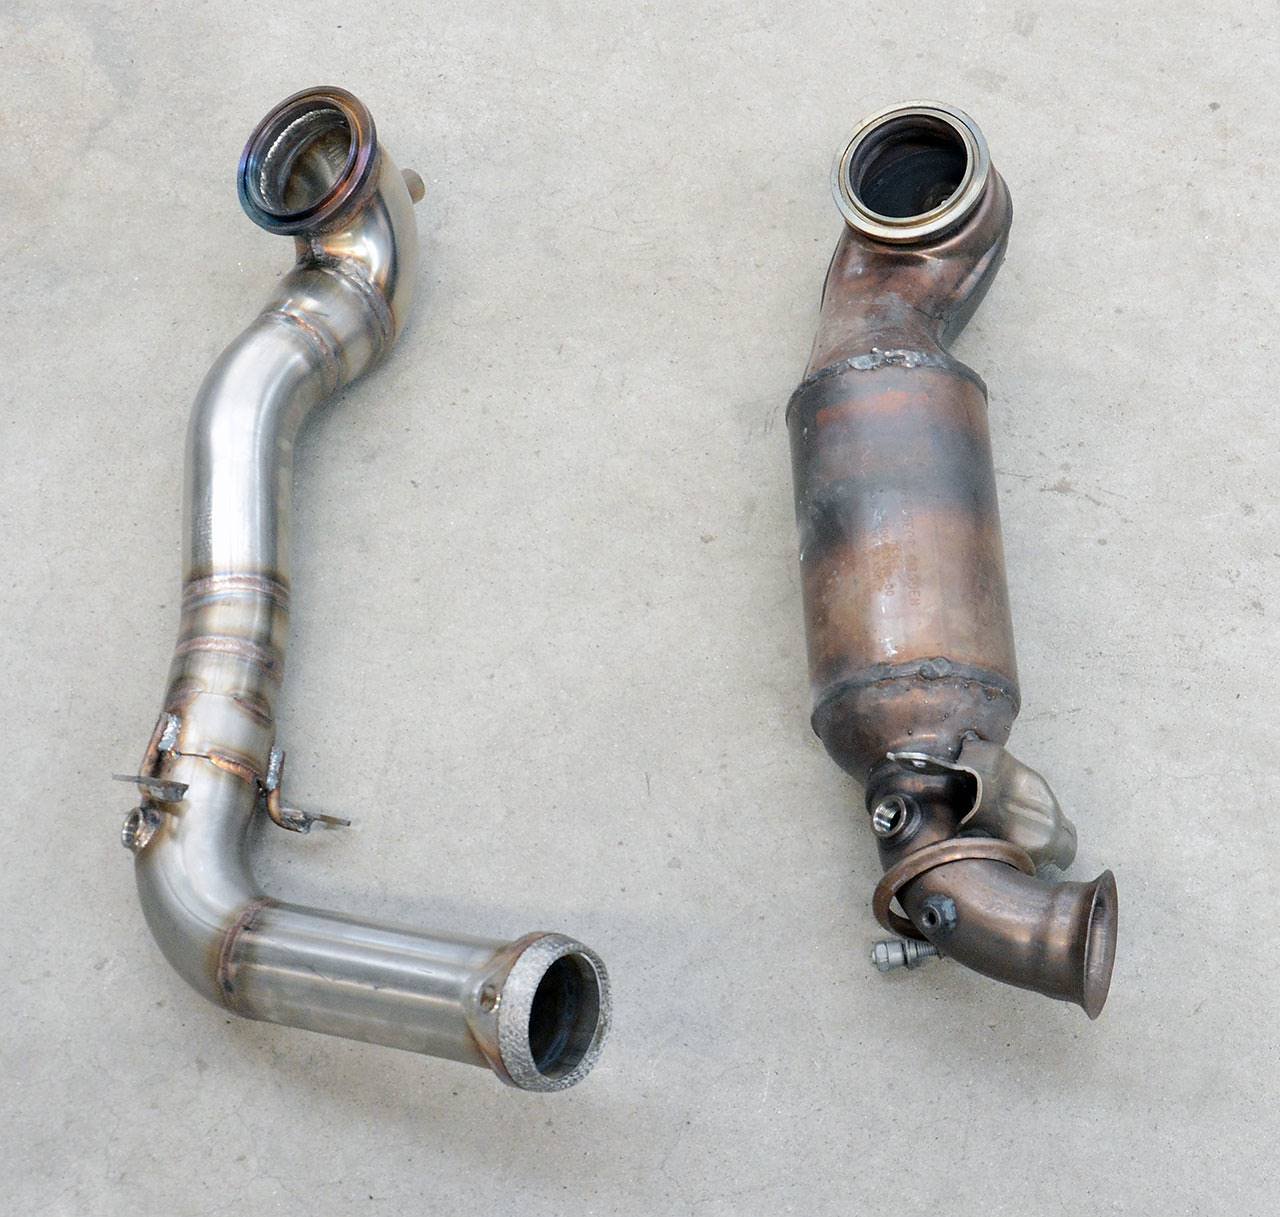 RCZ R: stock downpipe with catalytic converter VS Supersprint catless downpipe